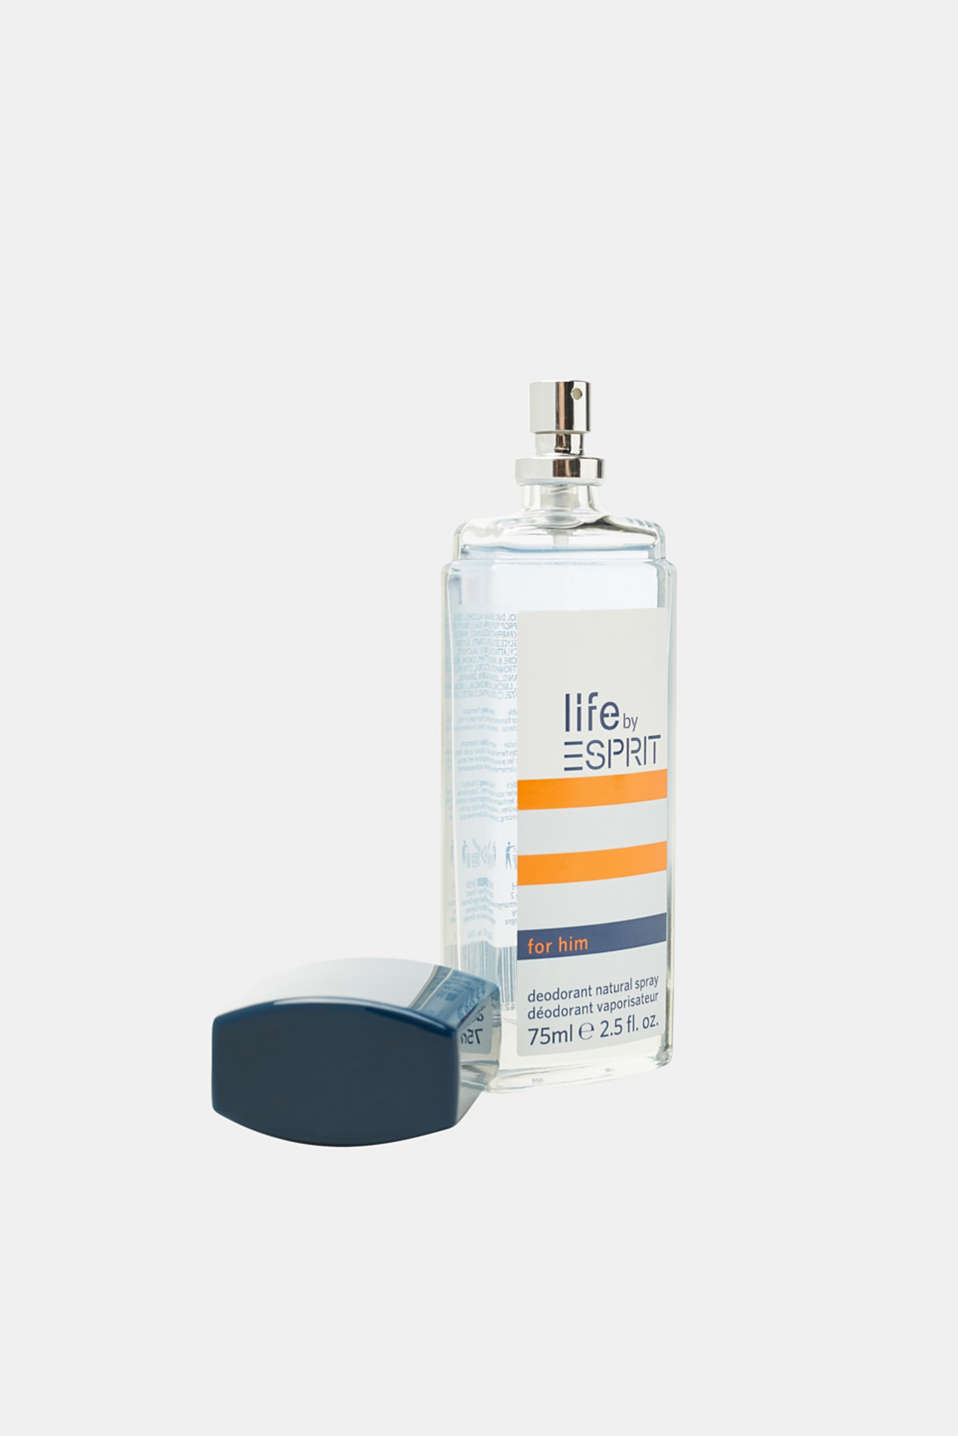 life by ESPRIT deodorant, 75 ml, one colour, detail image number 1